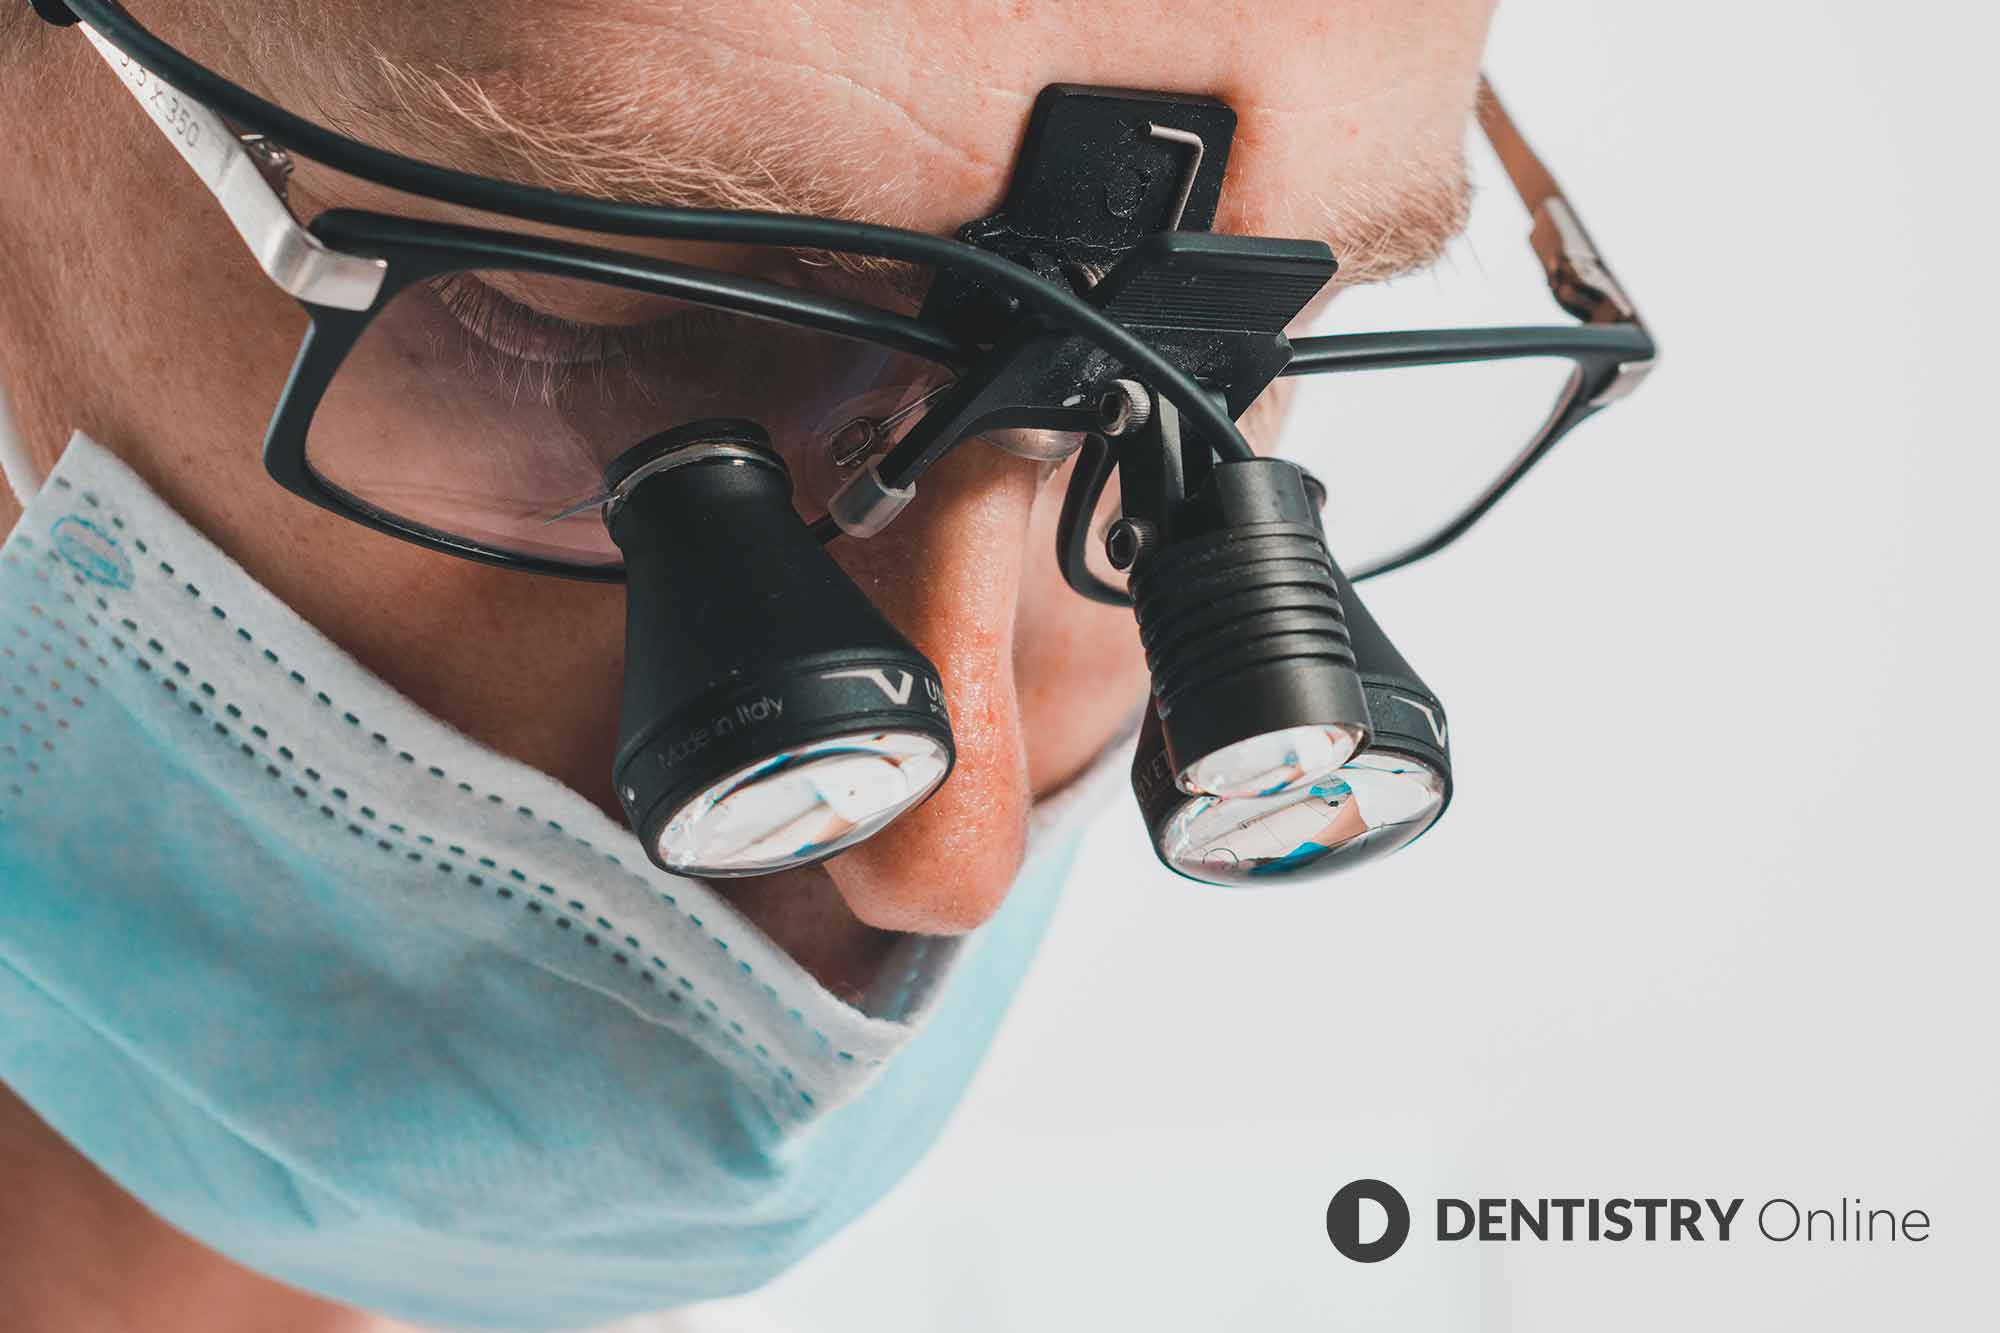 Ali Al Hassan gives his top tips for investments that young dentists should be making